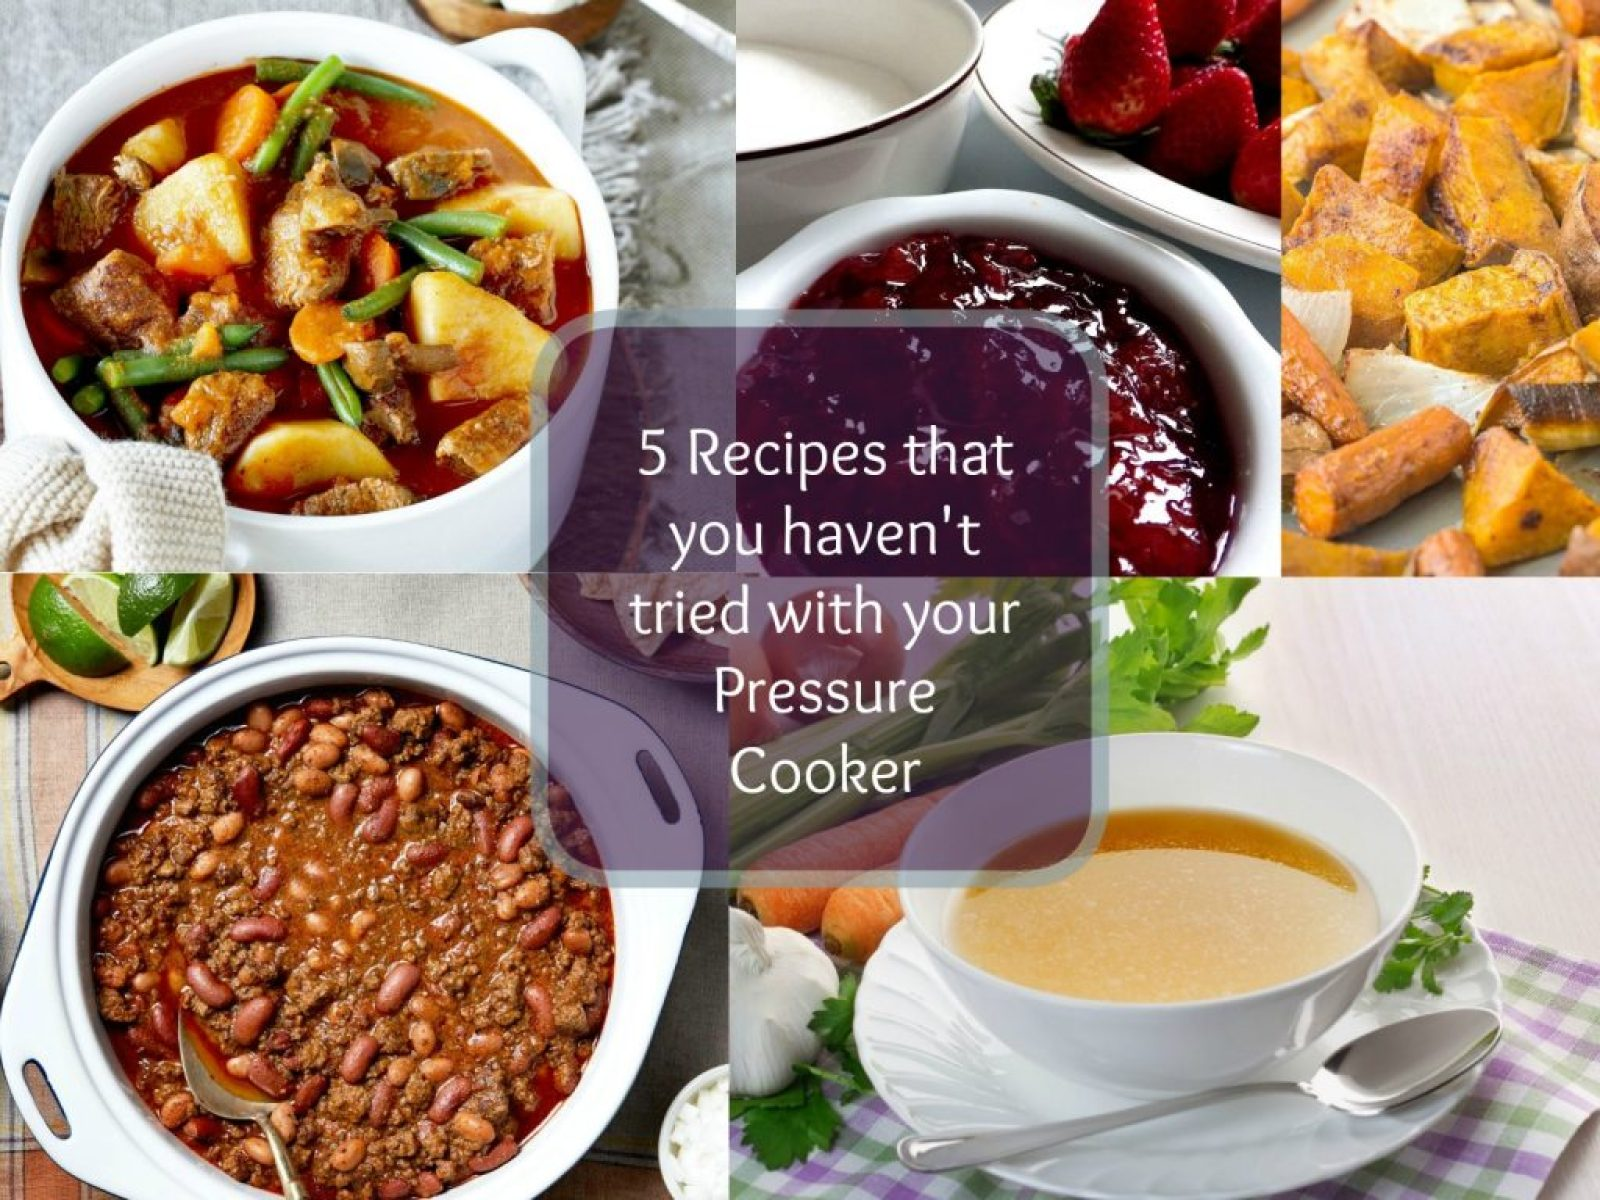 5 Recipes that you haven't tried with your Pressure Cooker